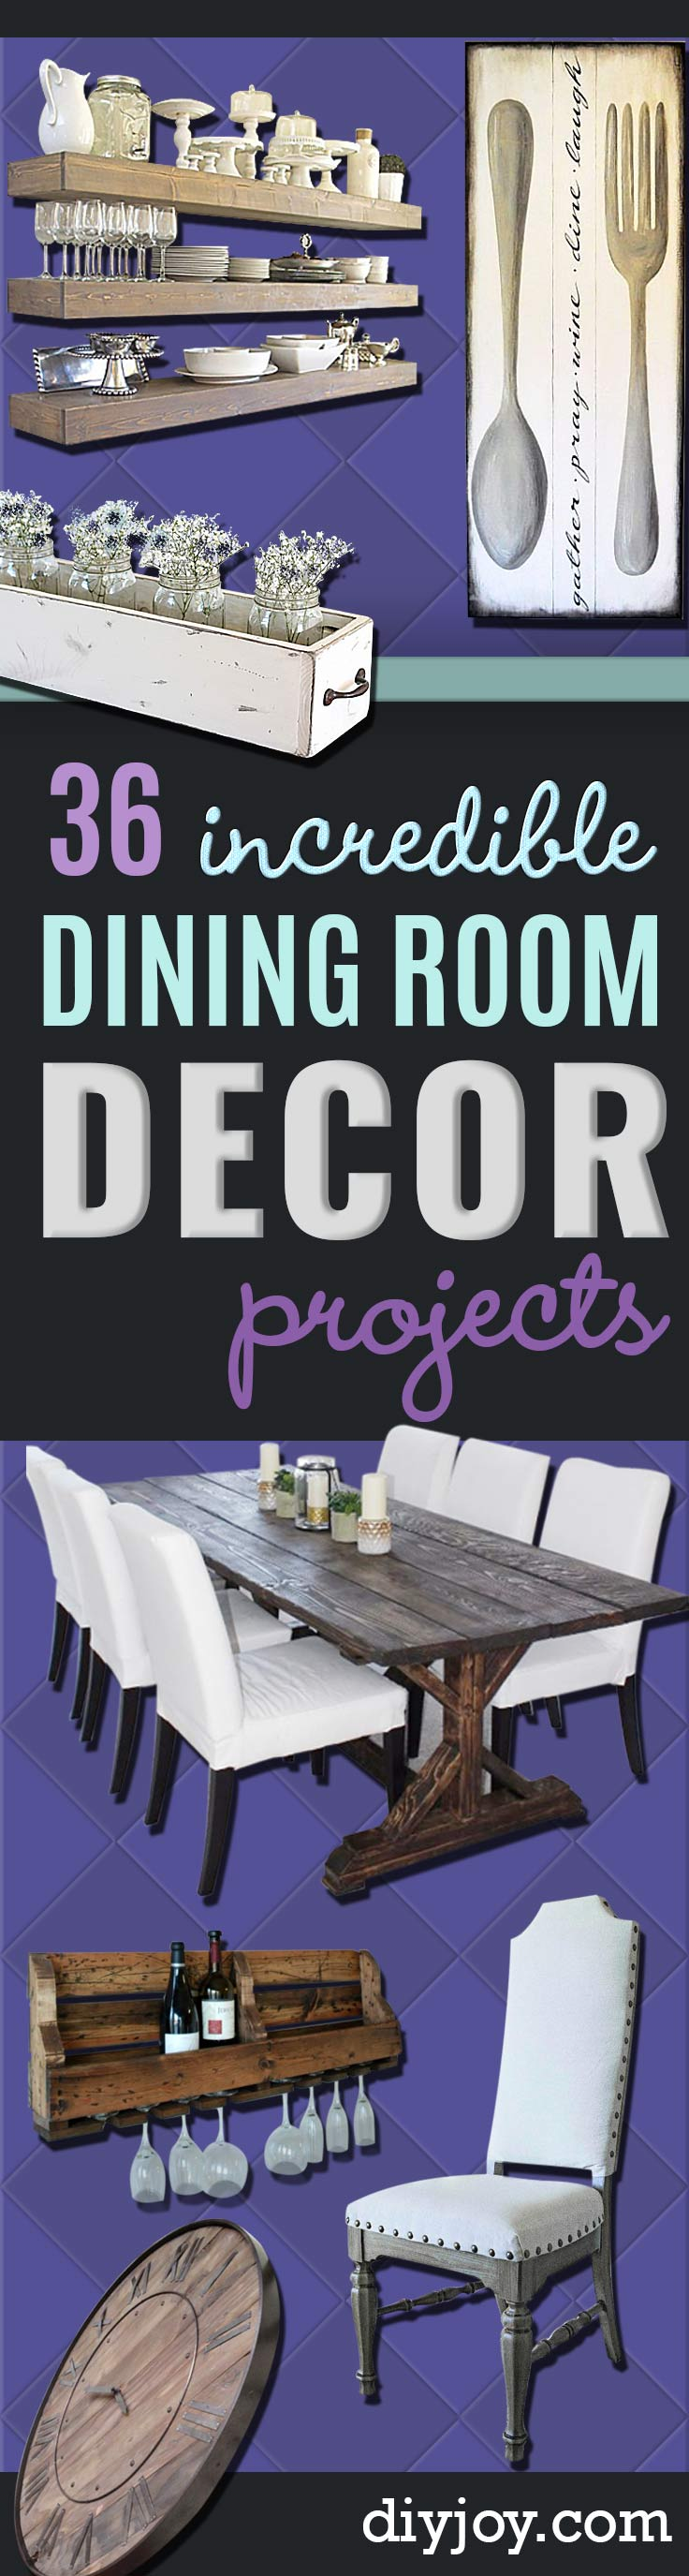 DIY Dining Room Decor Ideas